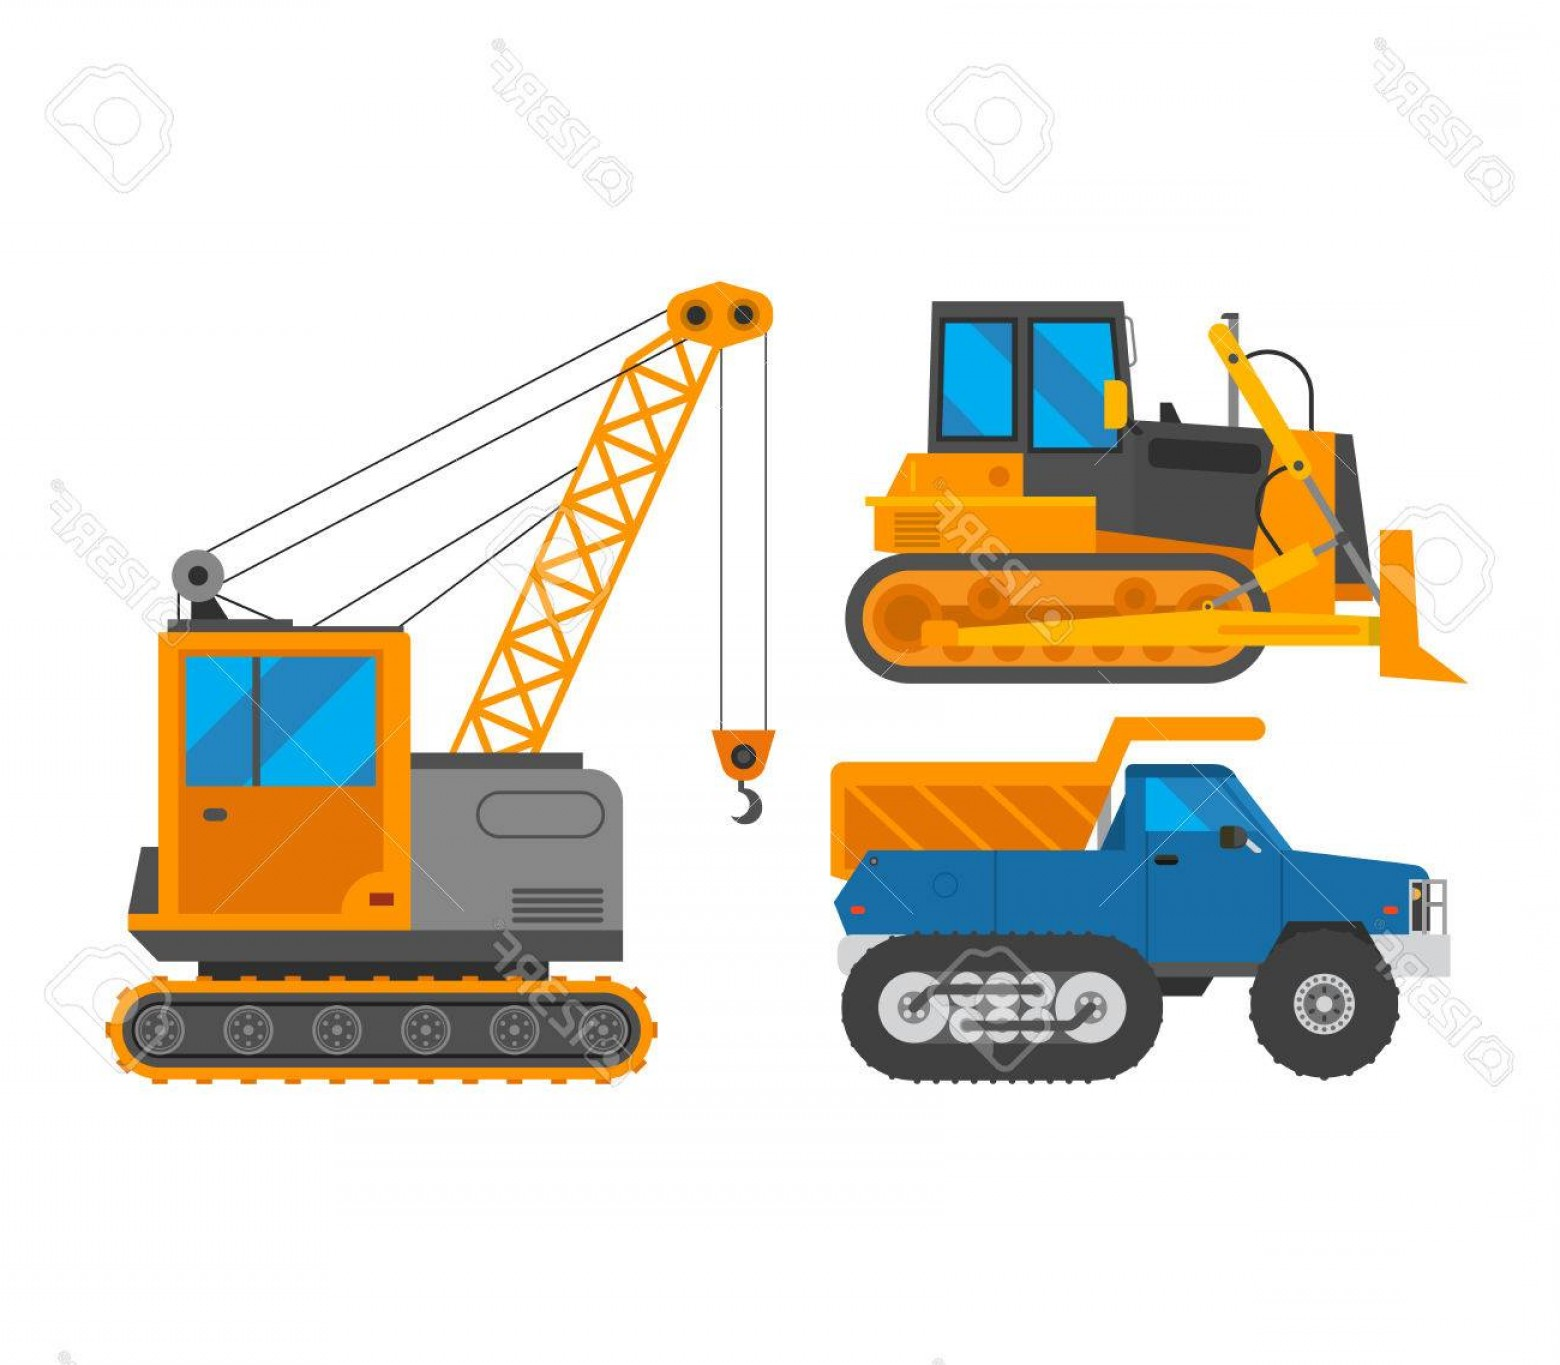 Caterpillar Trackhoe Bulldozer Vector: Photostock Vector Tracked Excavator Vector Illustration Isolated On White Background Construction Industry Machinery C